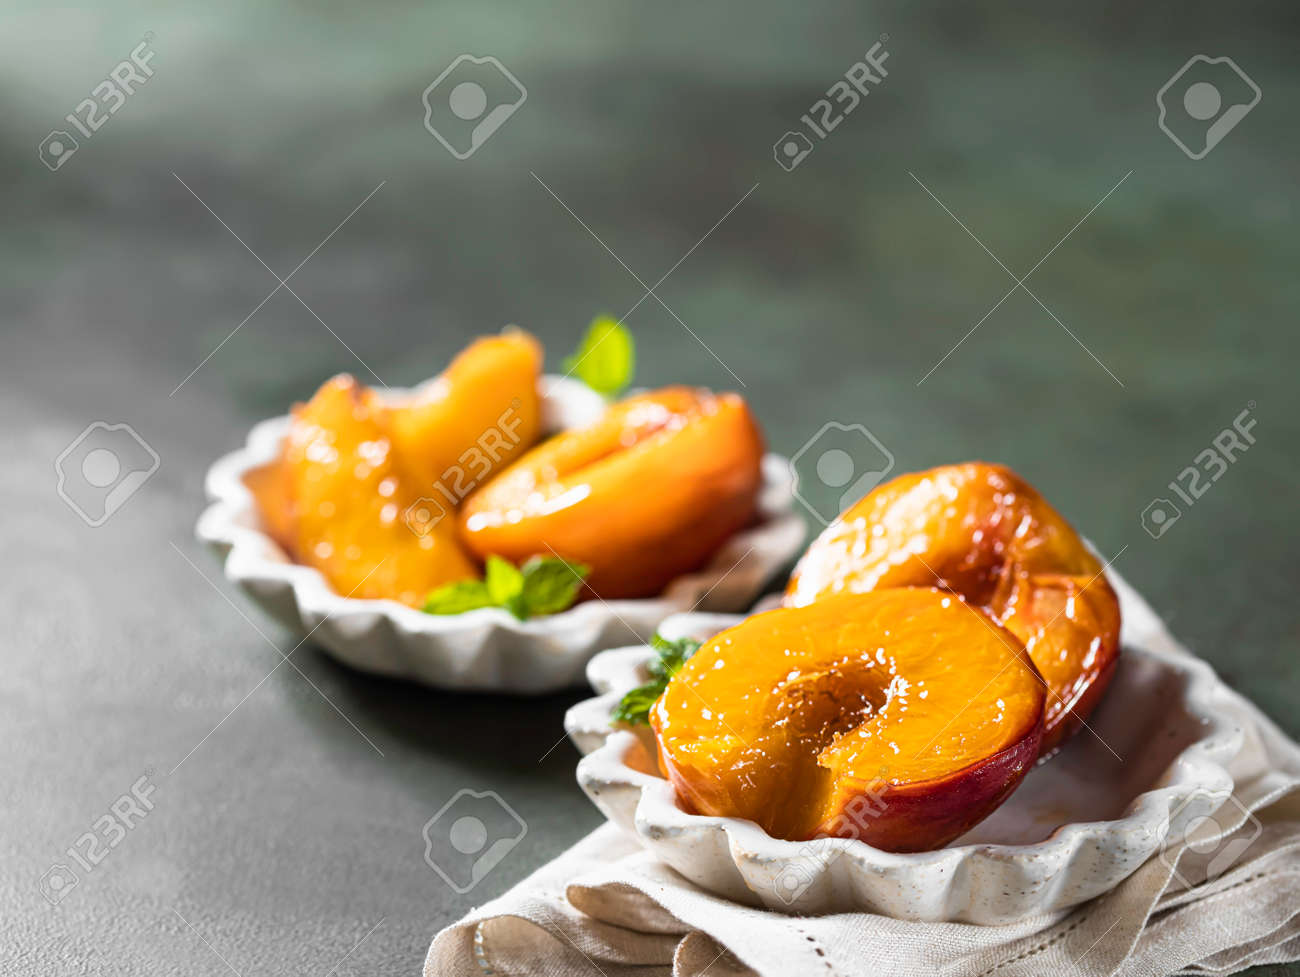 Caramelized peaches with honey, with mint leaves on a concrete background with shadows. Summer dessert. - 171666899